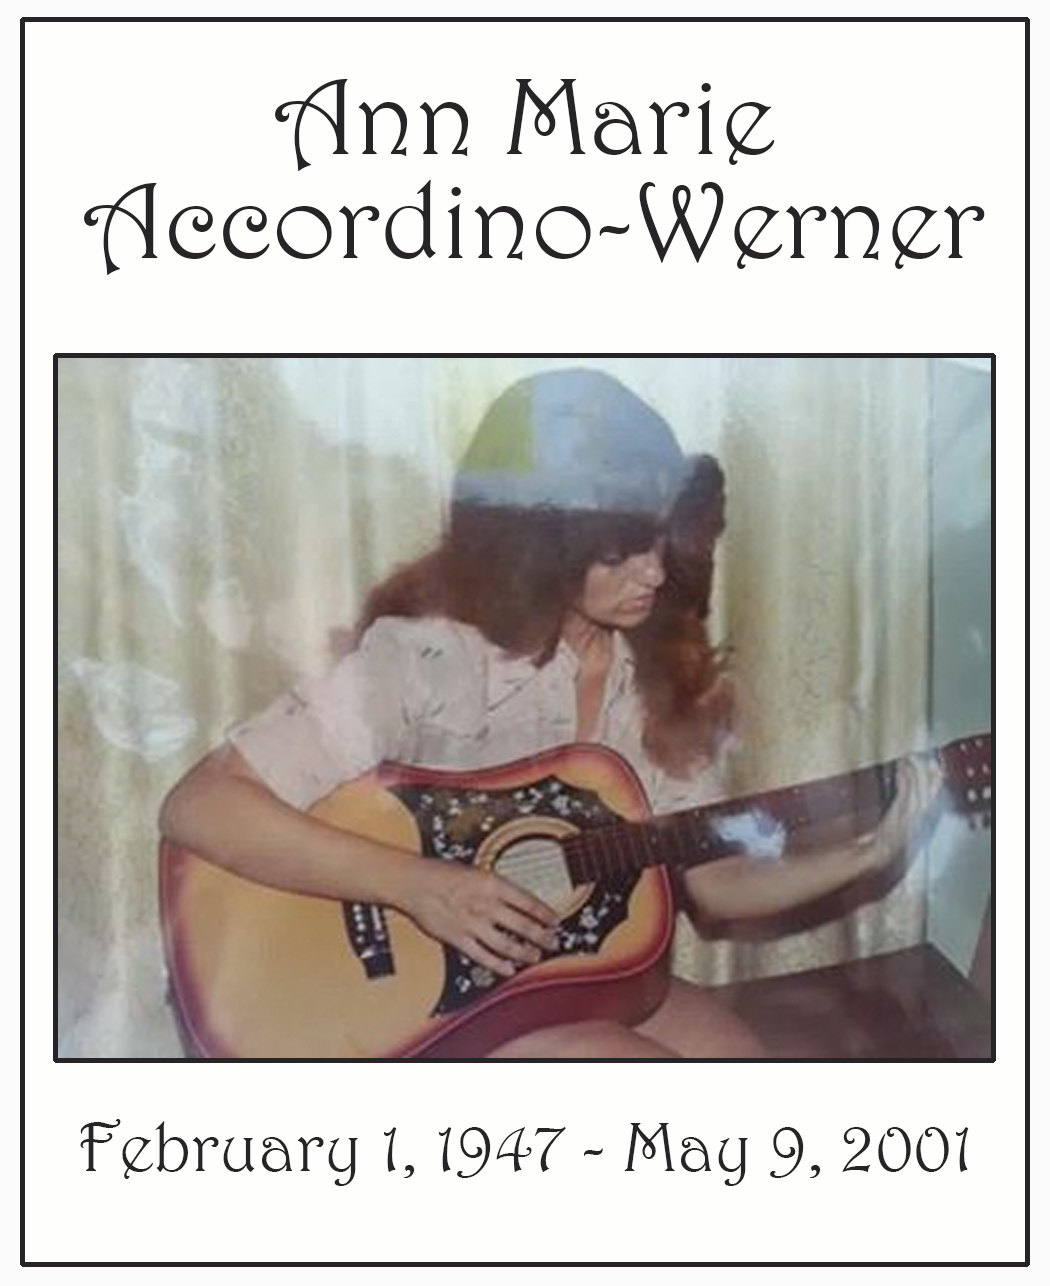 ANN MARIE ACCORDINO-WERNER FINAL for 2019 MEMORIAL.jpg